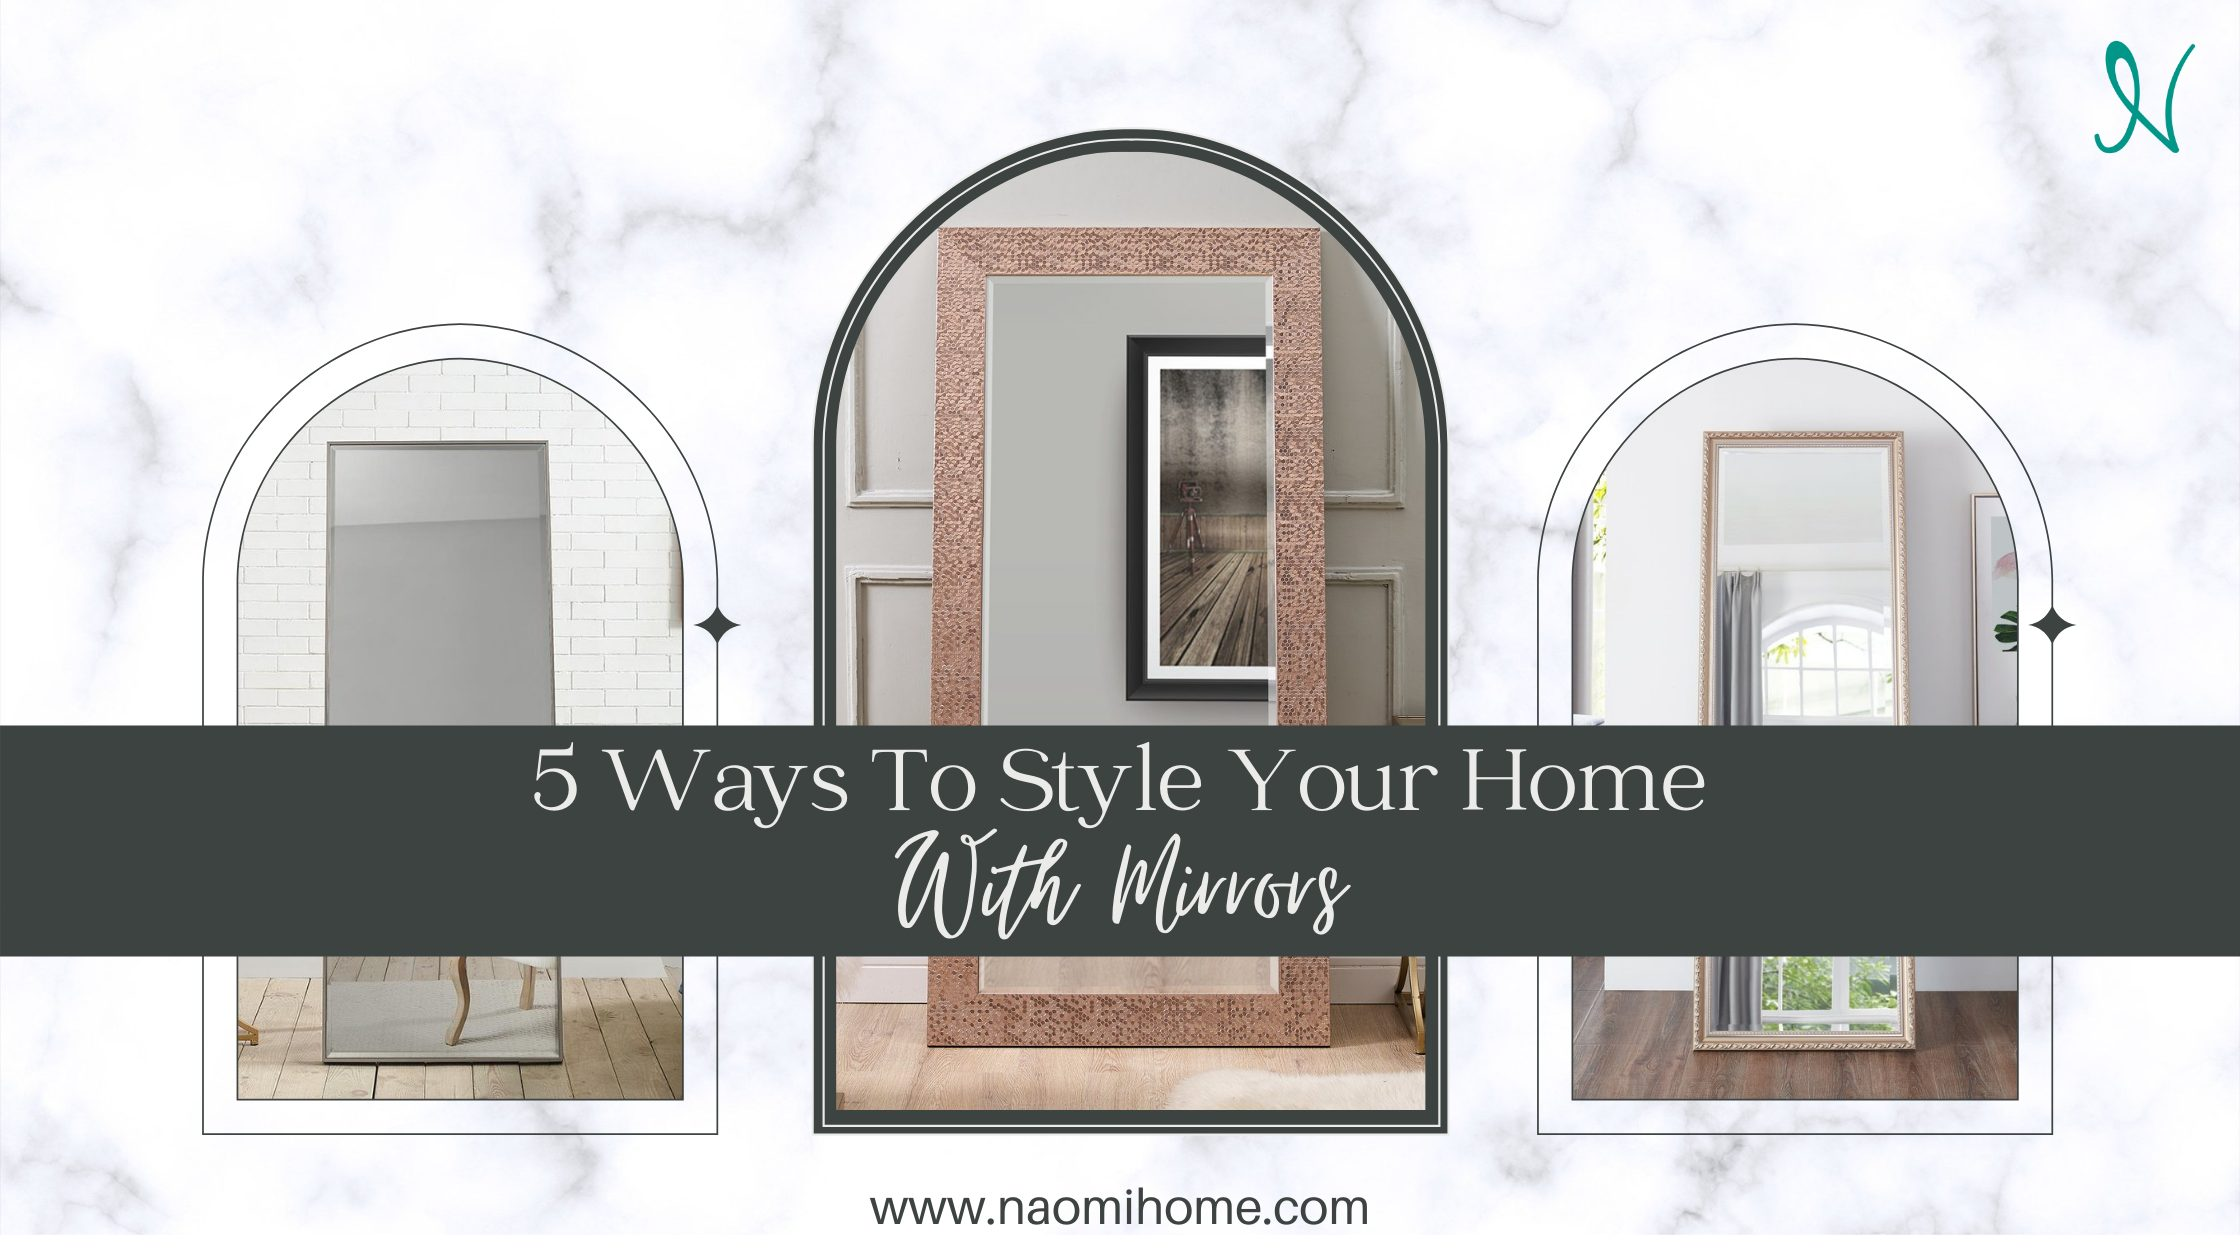 5 Ways To Style Your Home With Mirrors